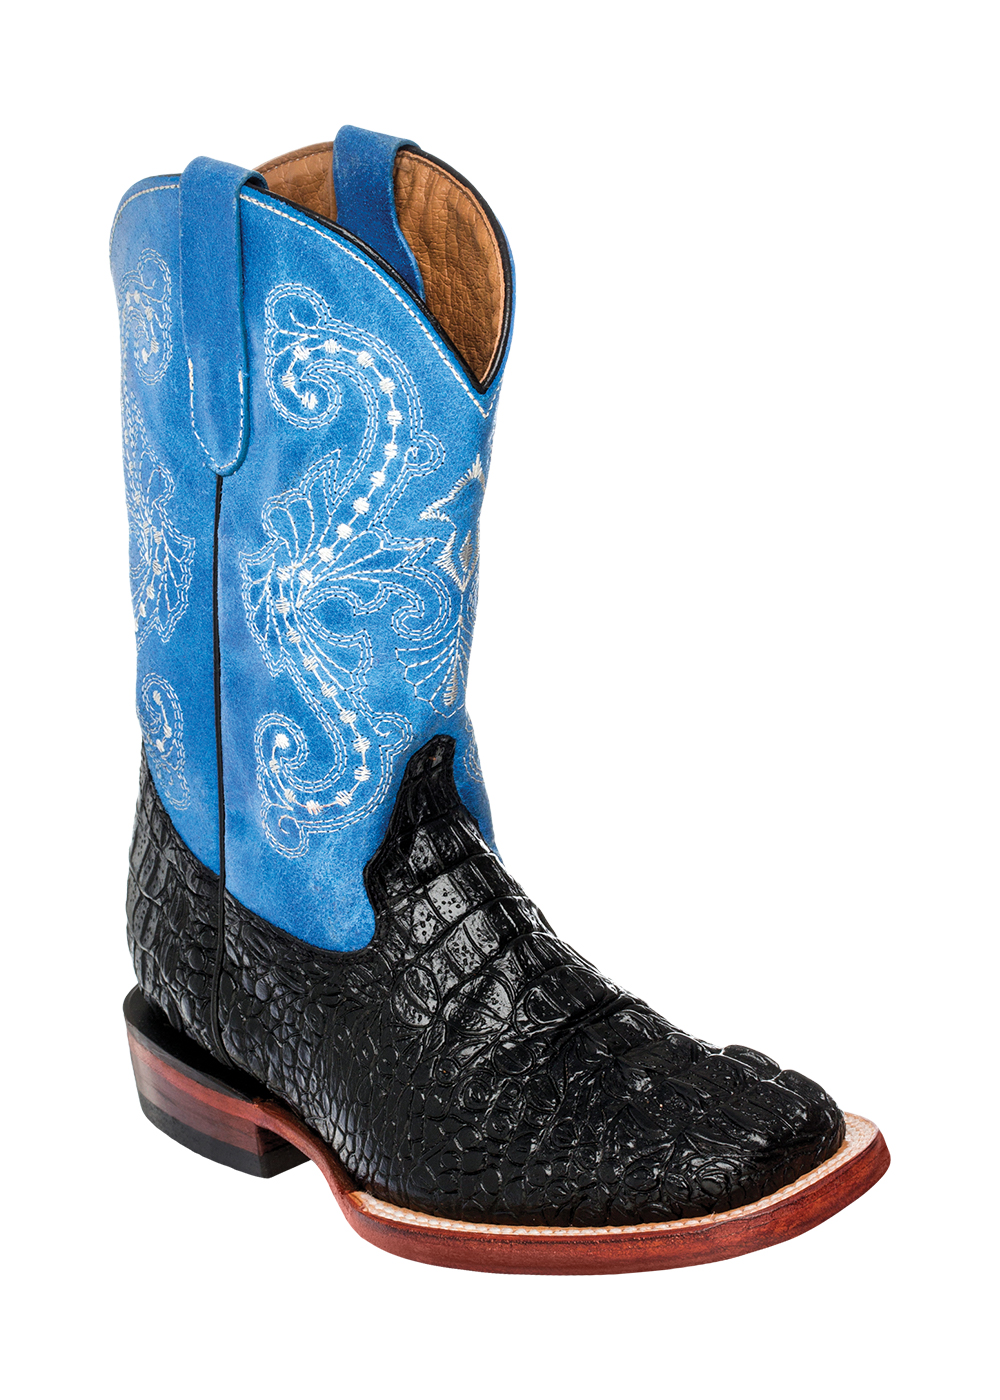 Ferrini Kid's Print Crocodile Cowboy Boot in Black/Blue